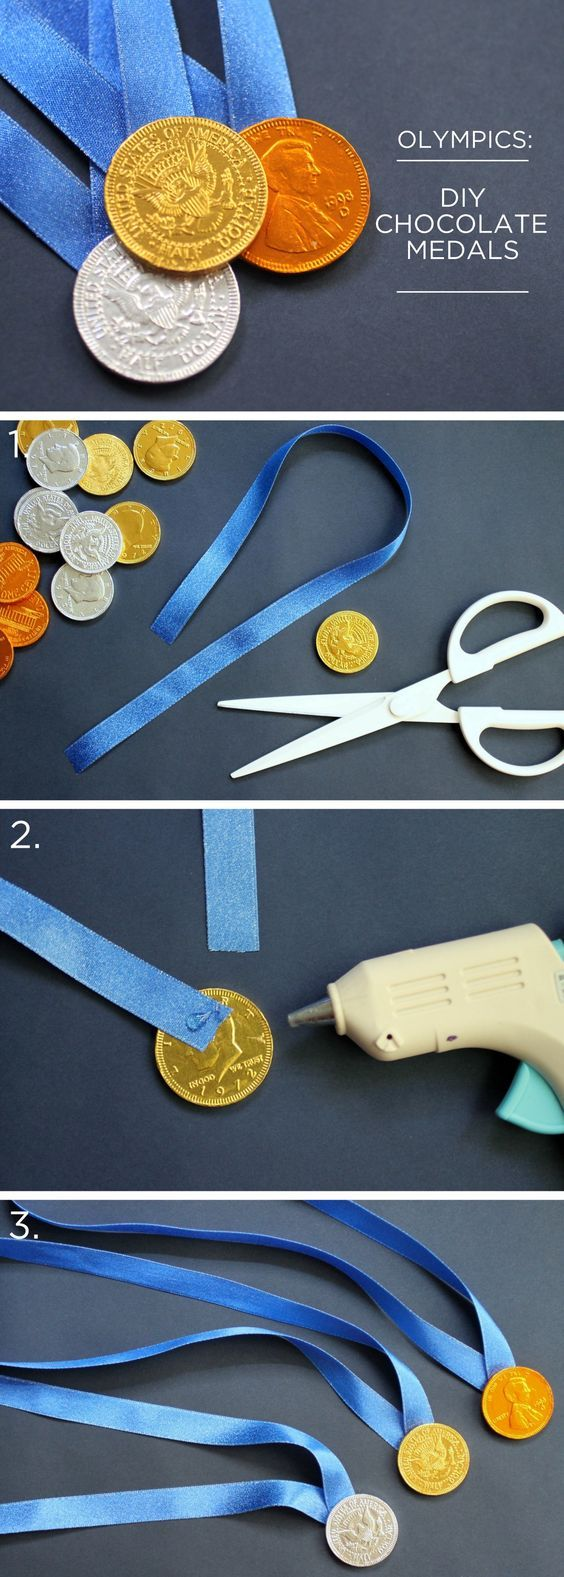 Olympics #DIY Chocolate Medals How to Infographic #EviteGatherings